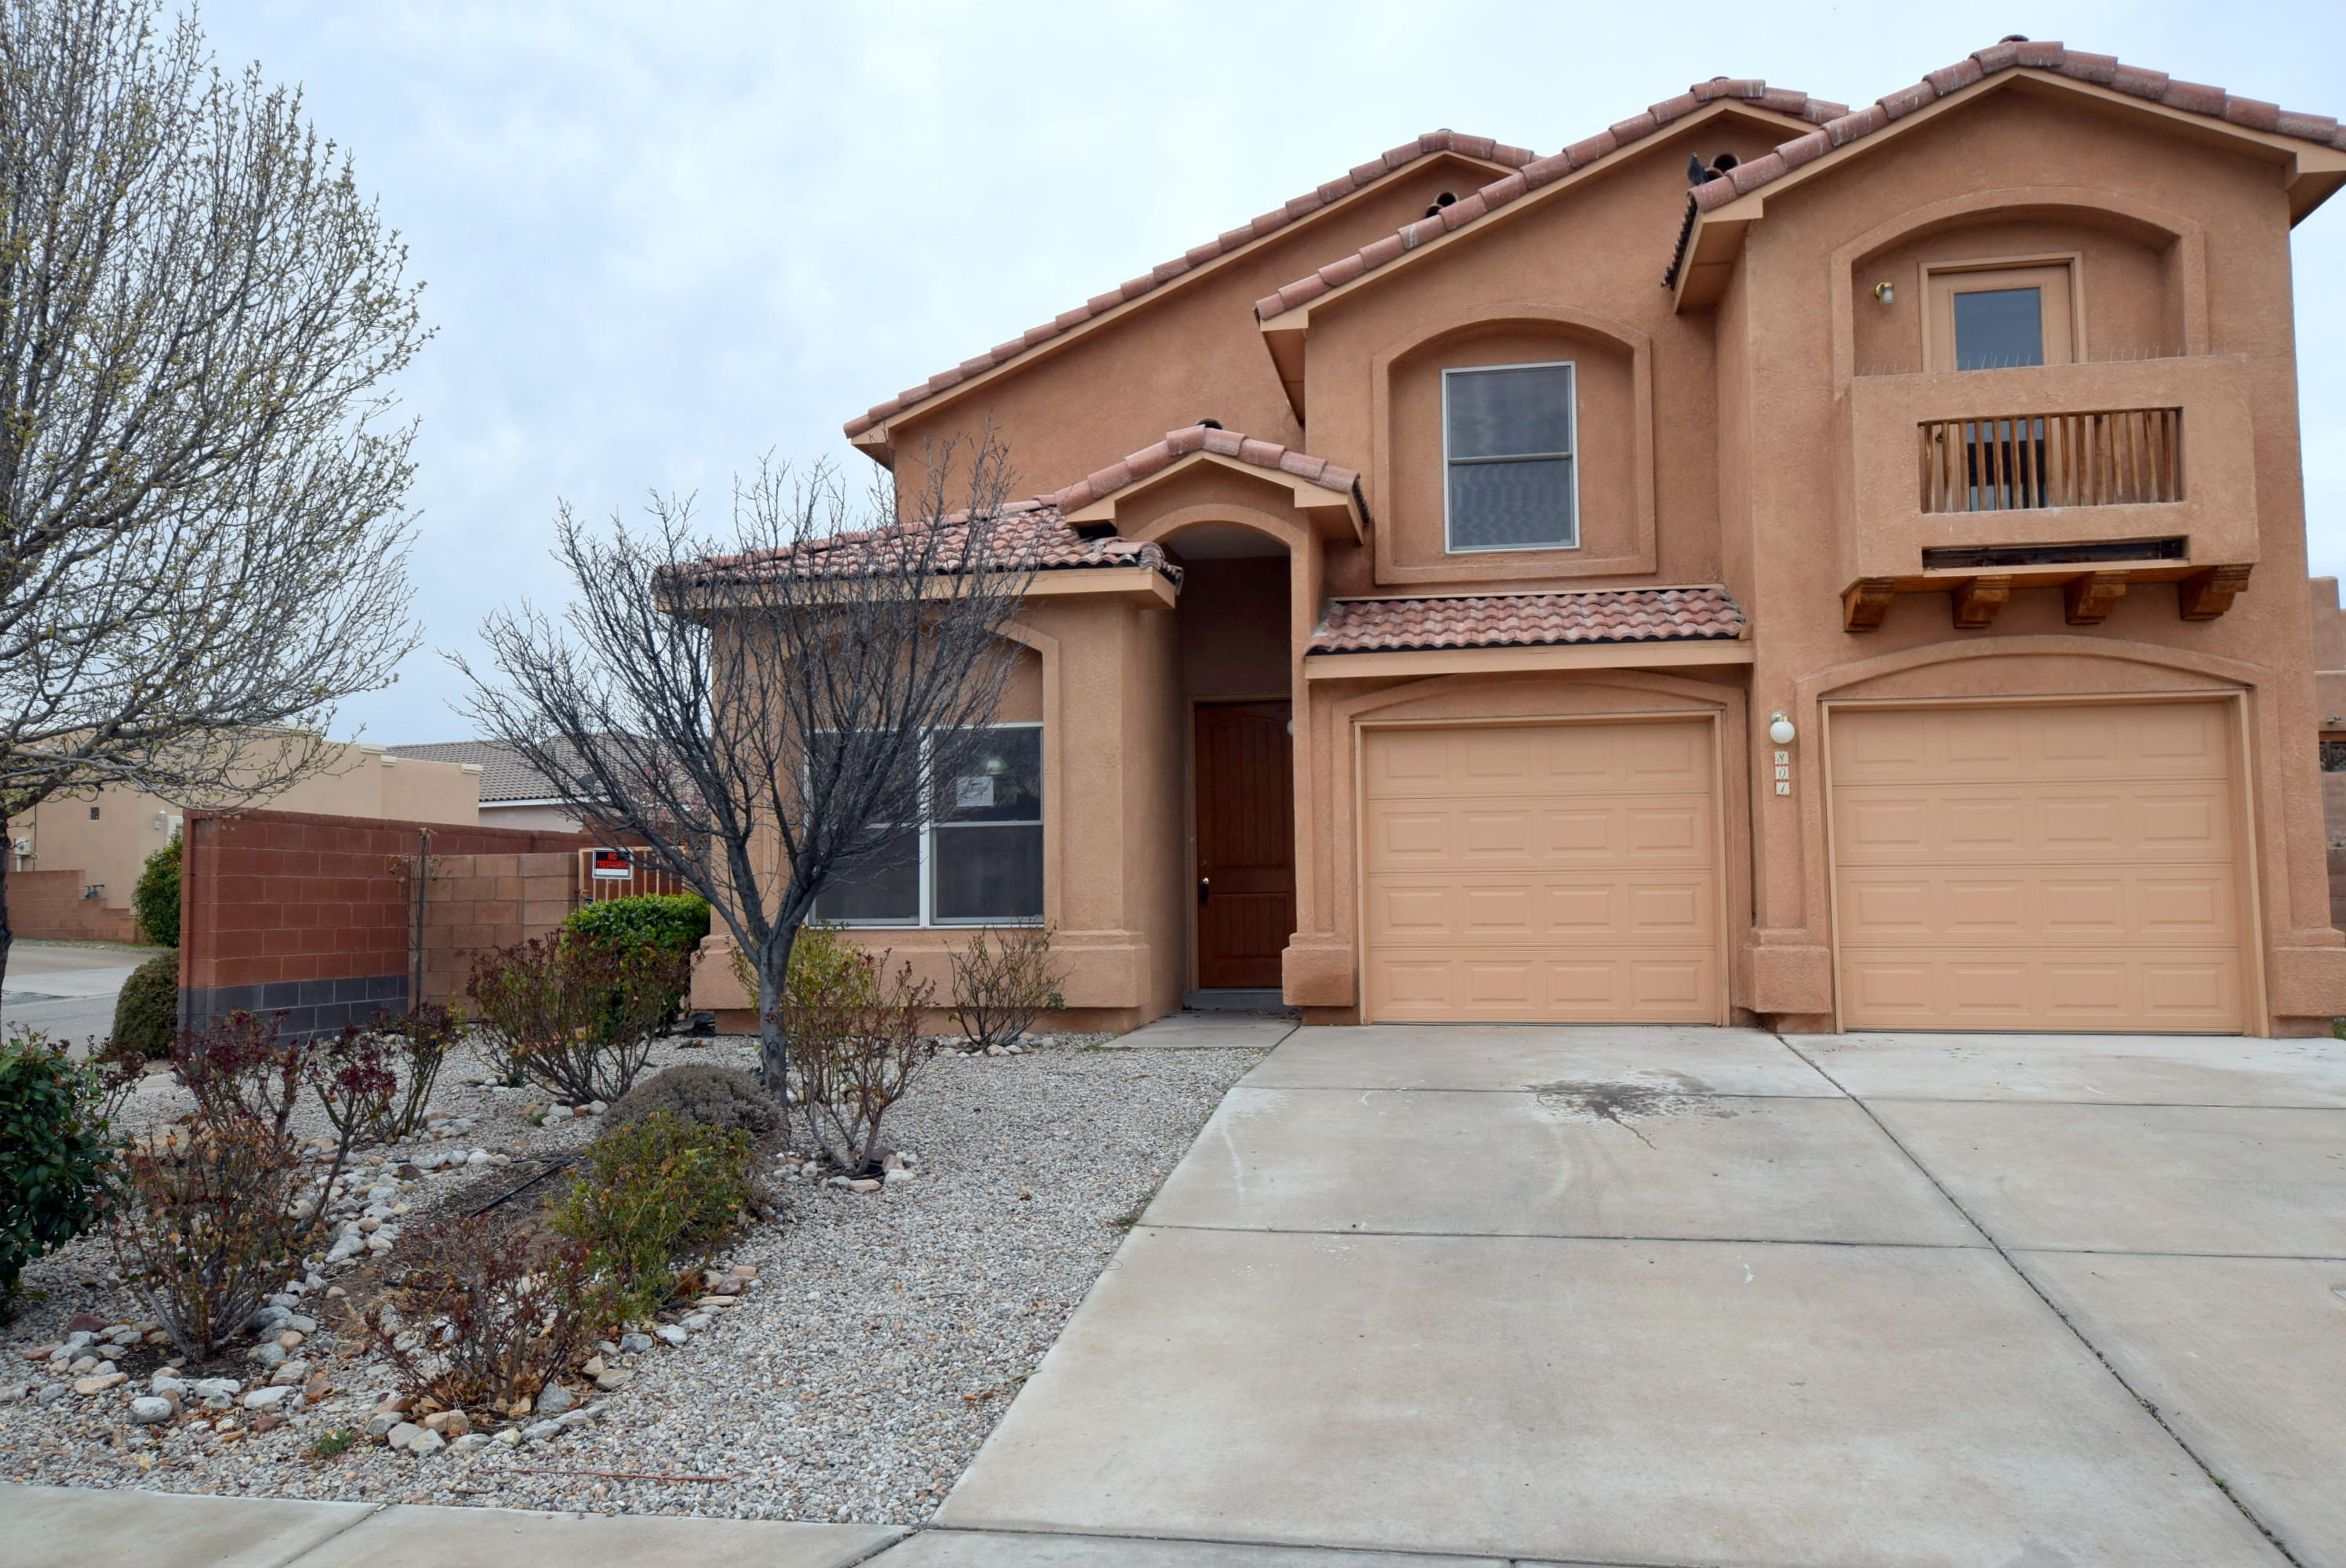 801 NW Tumulus Drive, Northwest Albuquerque and Northwest Heights, New Mexico